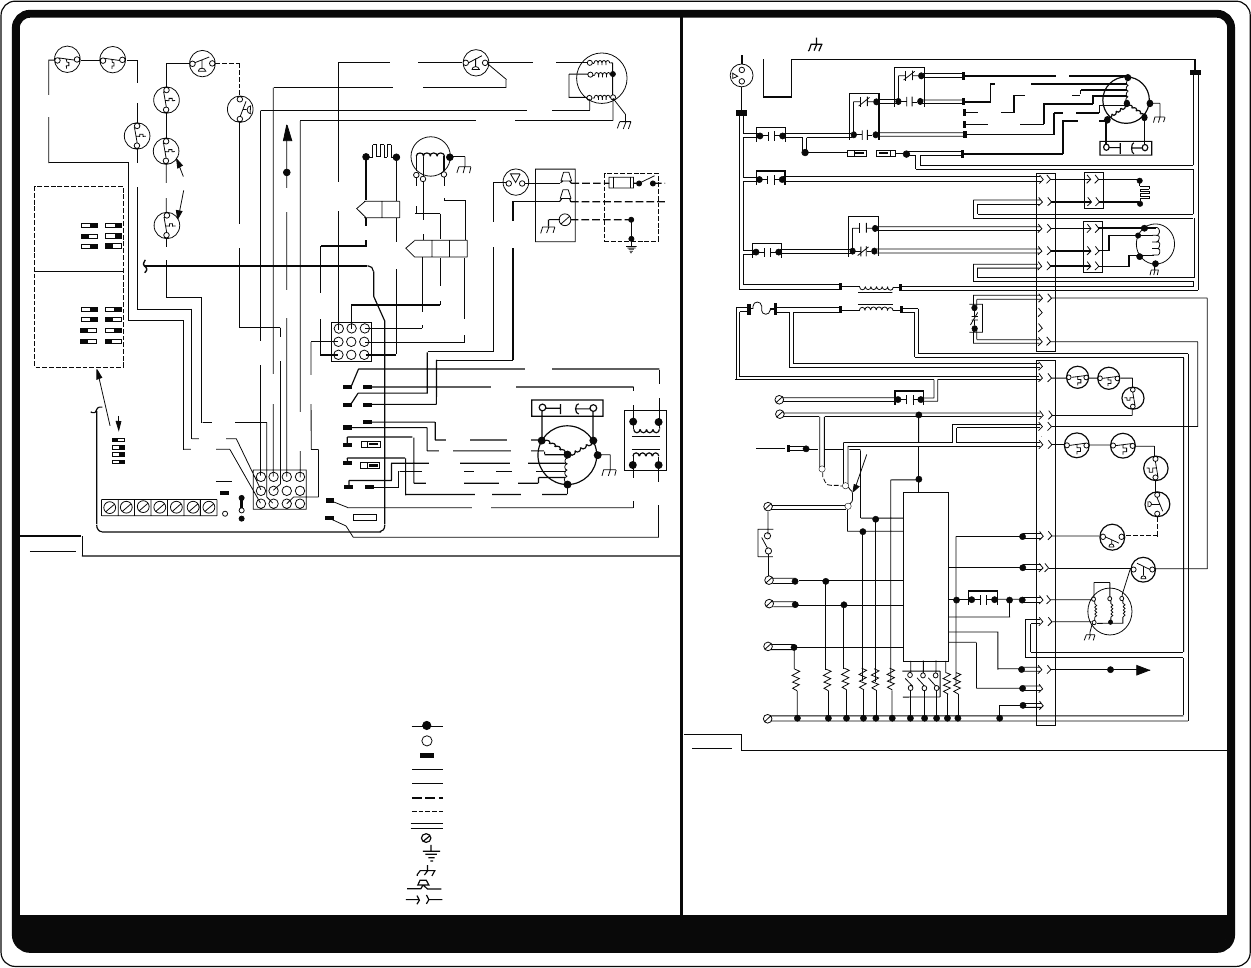 c2b73d22 c45f 43df a574 b6e707ea0cc7 bg8 power flame wiring diagram power flame burners wiring diagrams honeywell pressure switch wiring diagram at edmiracle.co